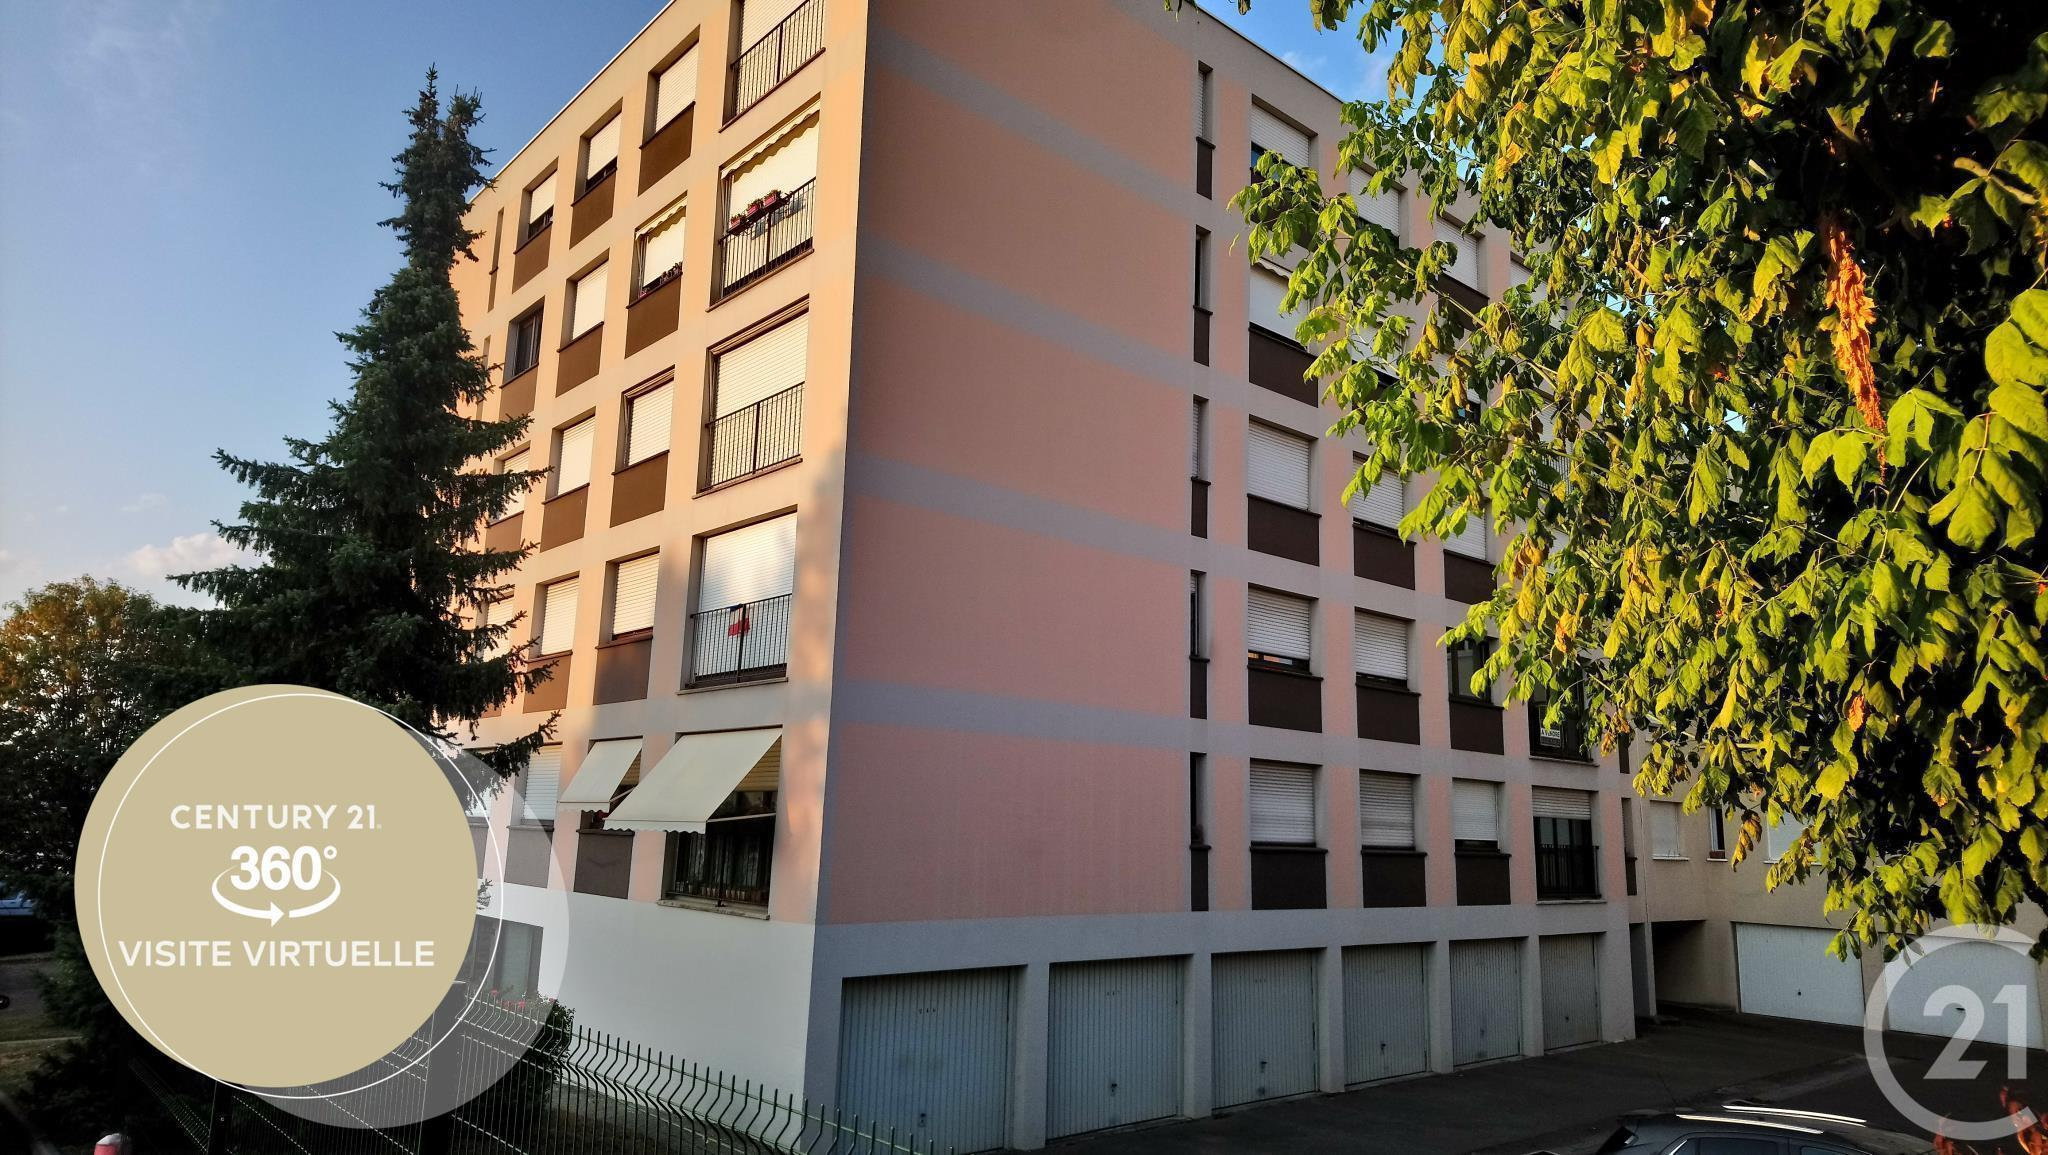 Appartement F4 à vendre - 4 pièces - 89,22 m2 - TROYES - 10 - CHAMPAGNE-ARDENNE